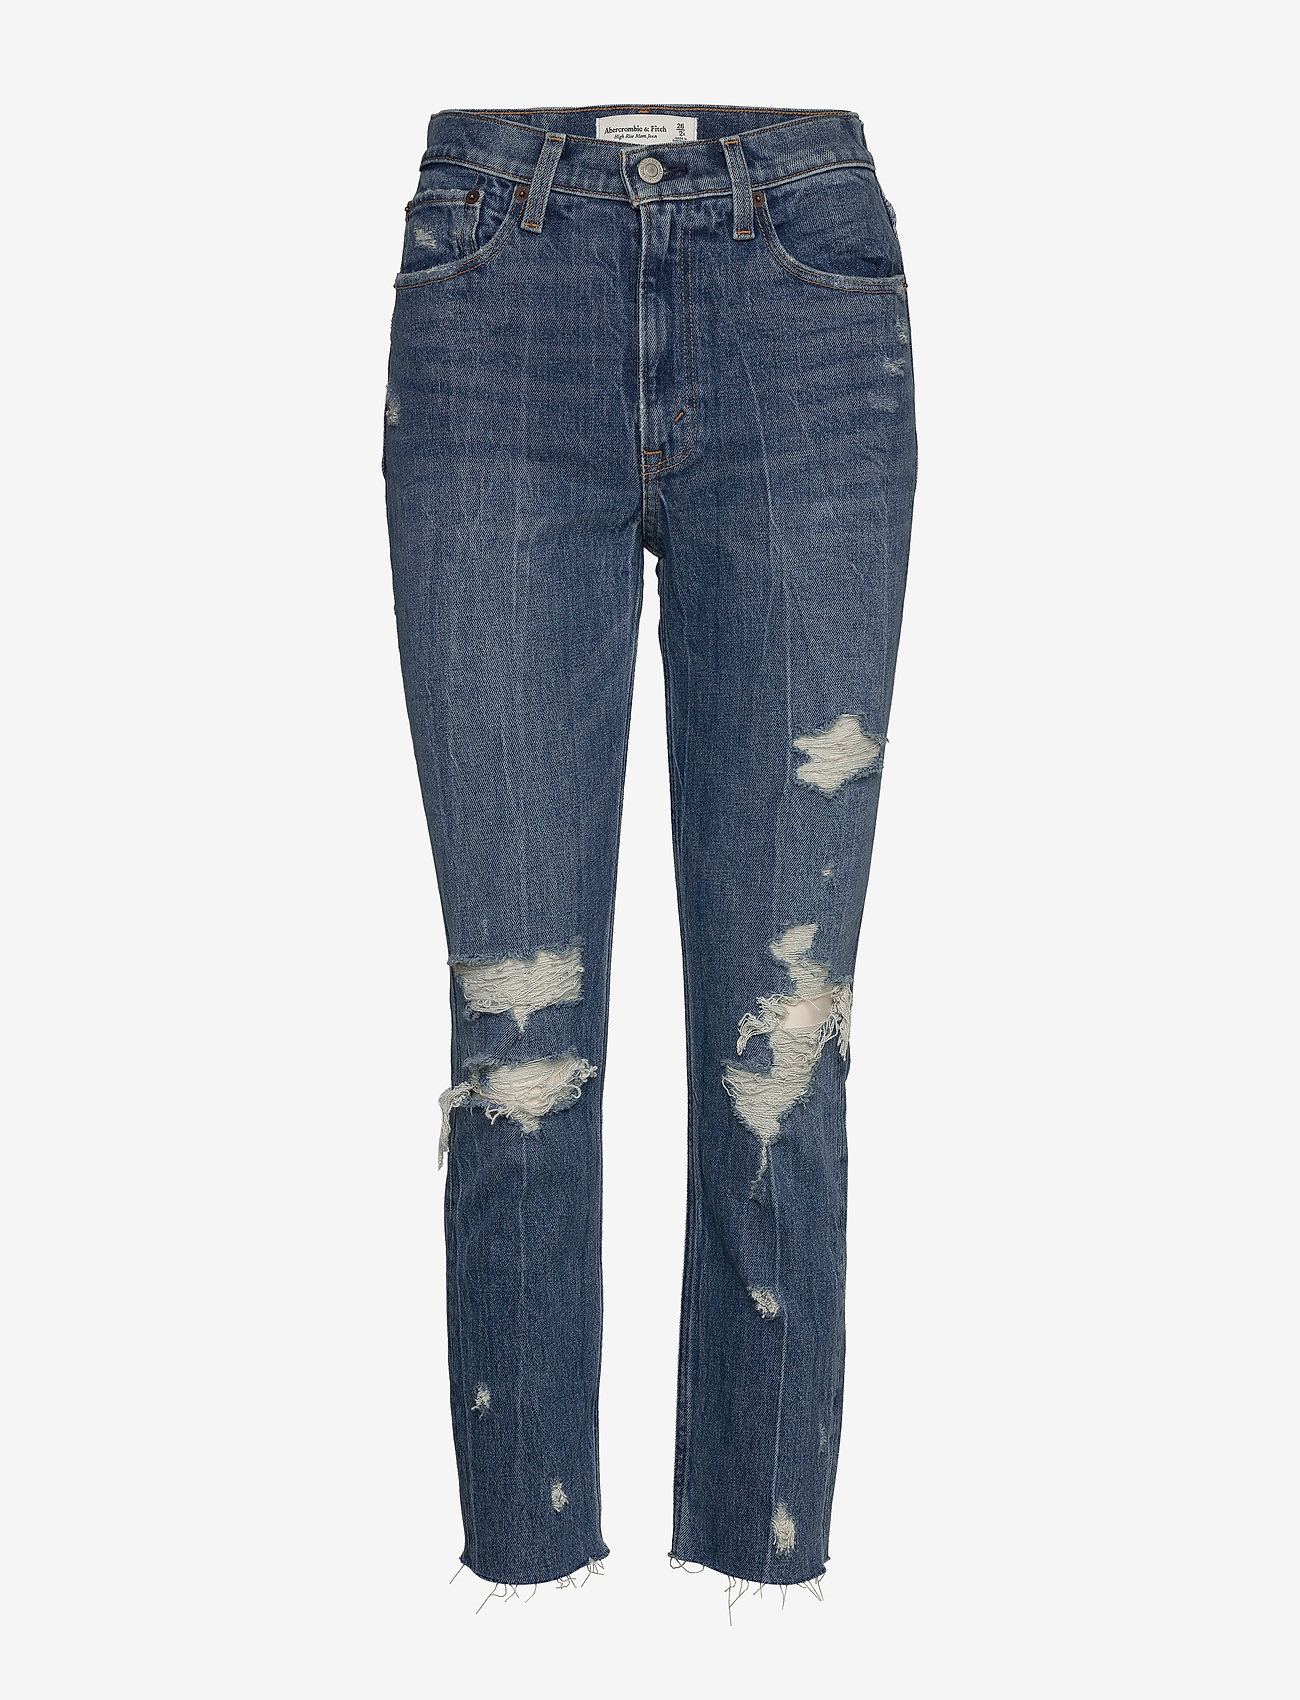 Abercrombie & Fitch - Mom Jeans - mom-jeans - dark destroy - 0